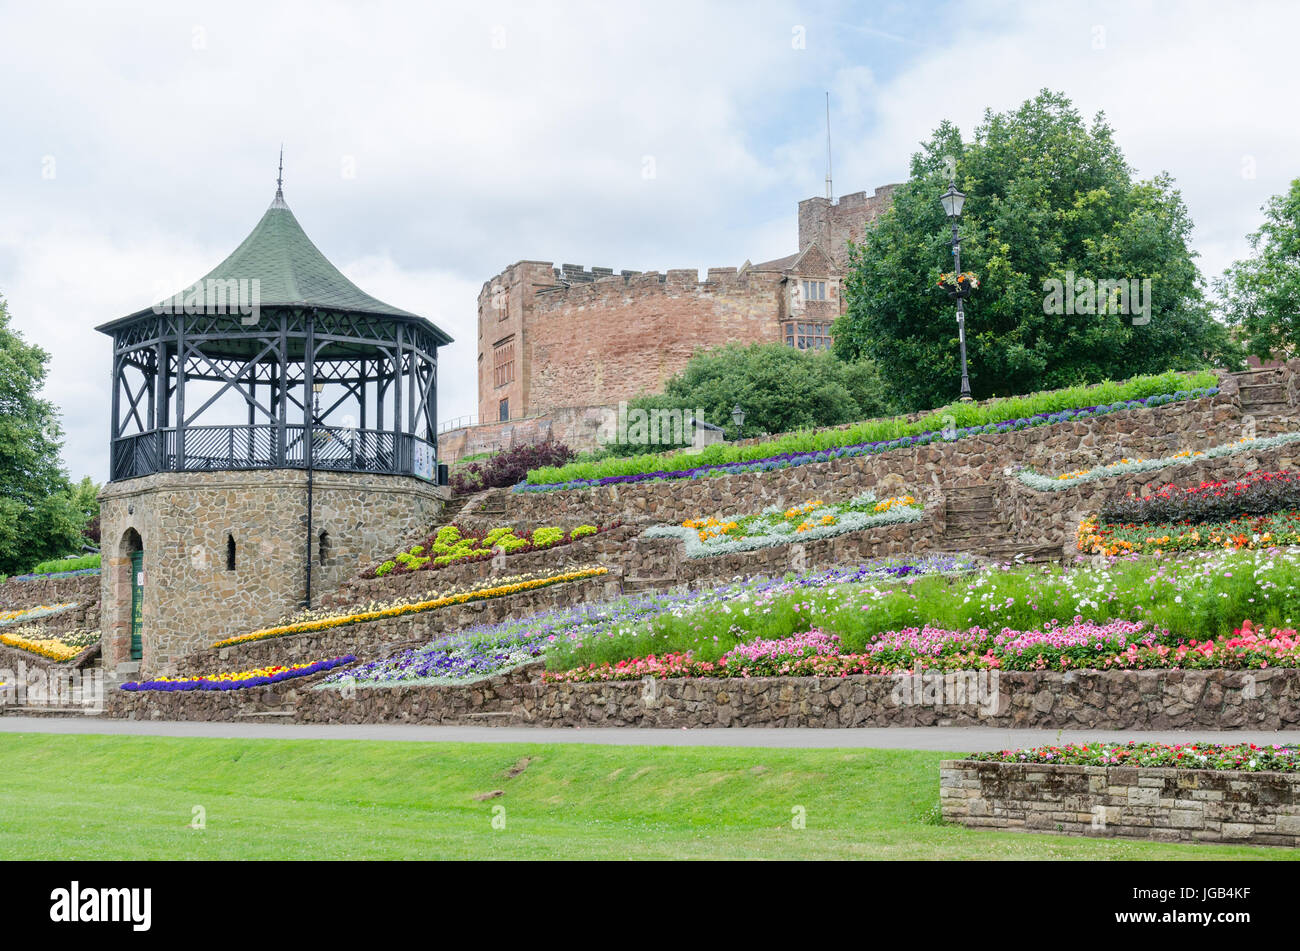 Tamworth Castle and the Castle Gardens - Stock Image